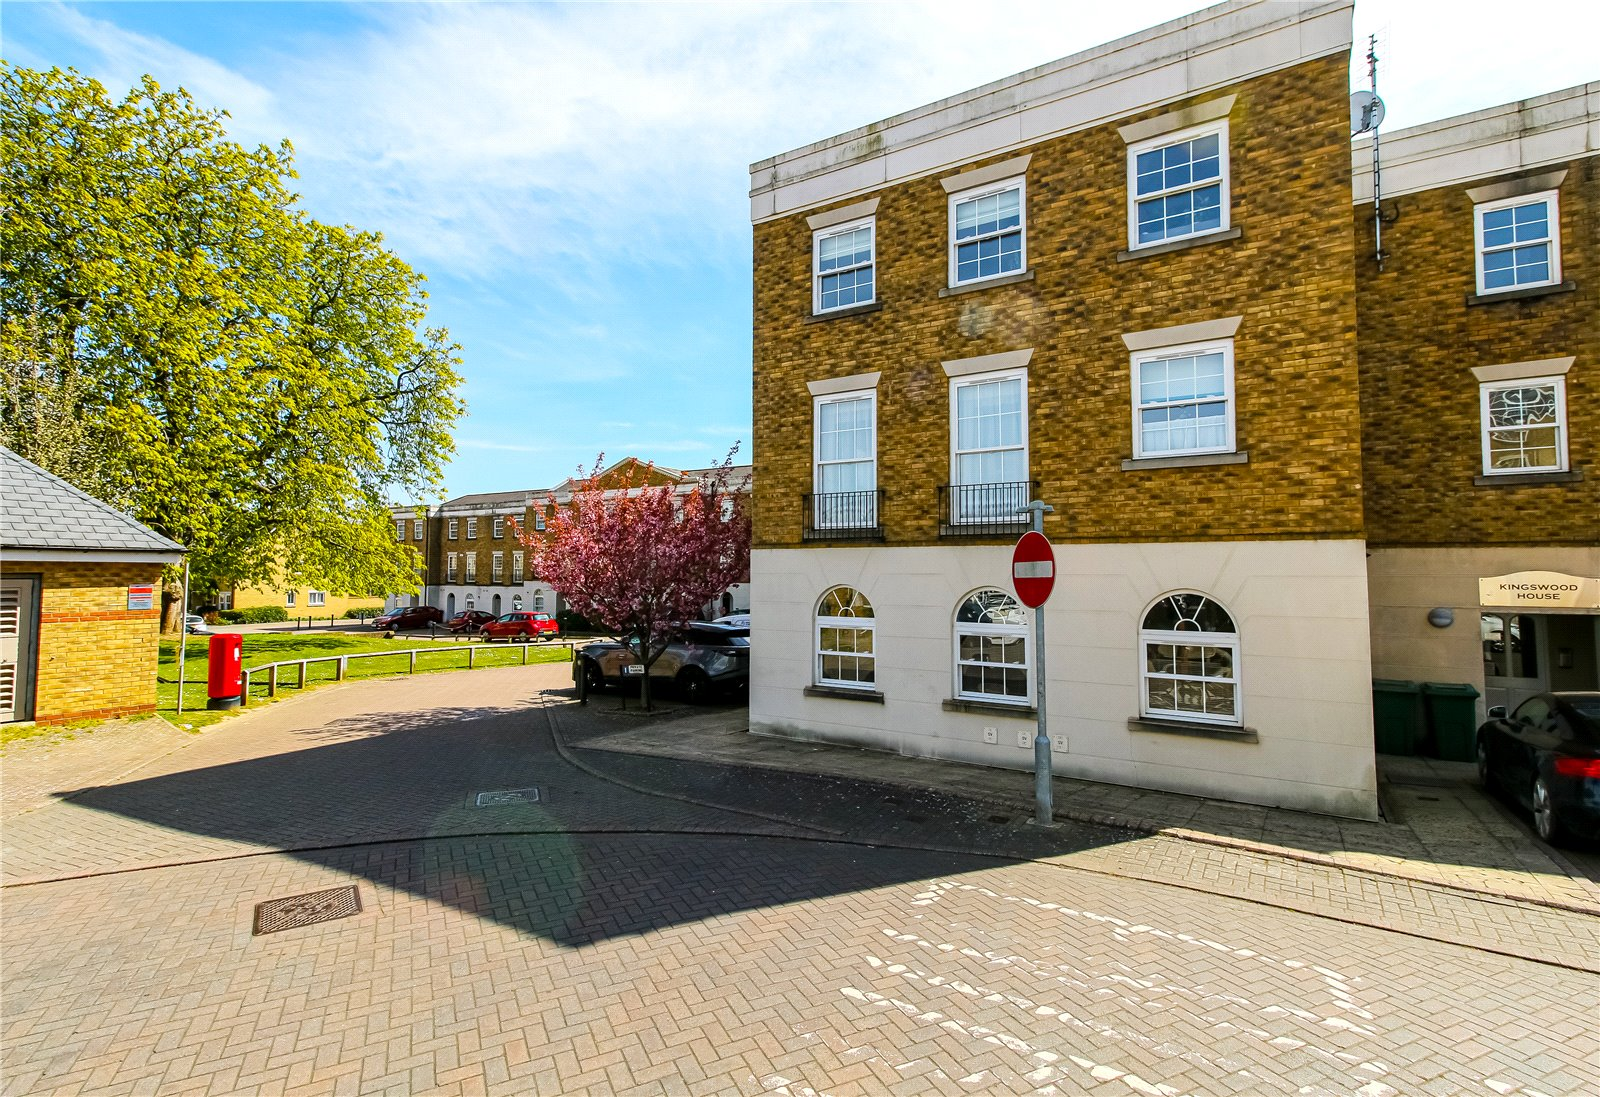 2 bed apartment for sale in Kingswood House, Marigold Way, ME16